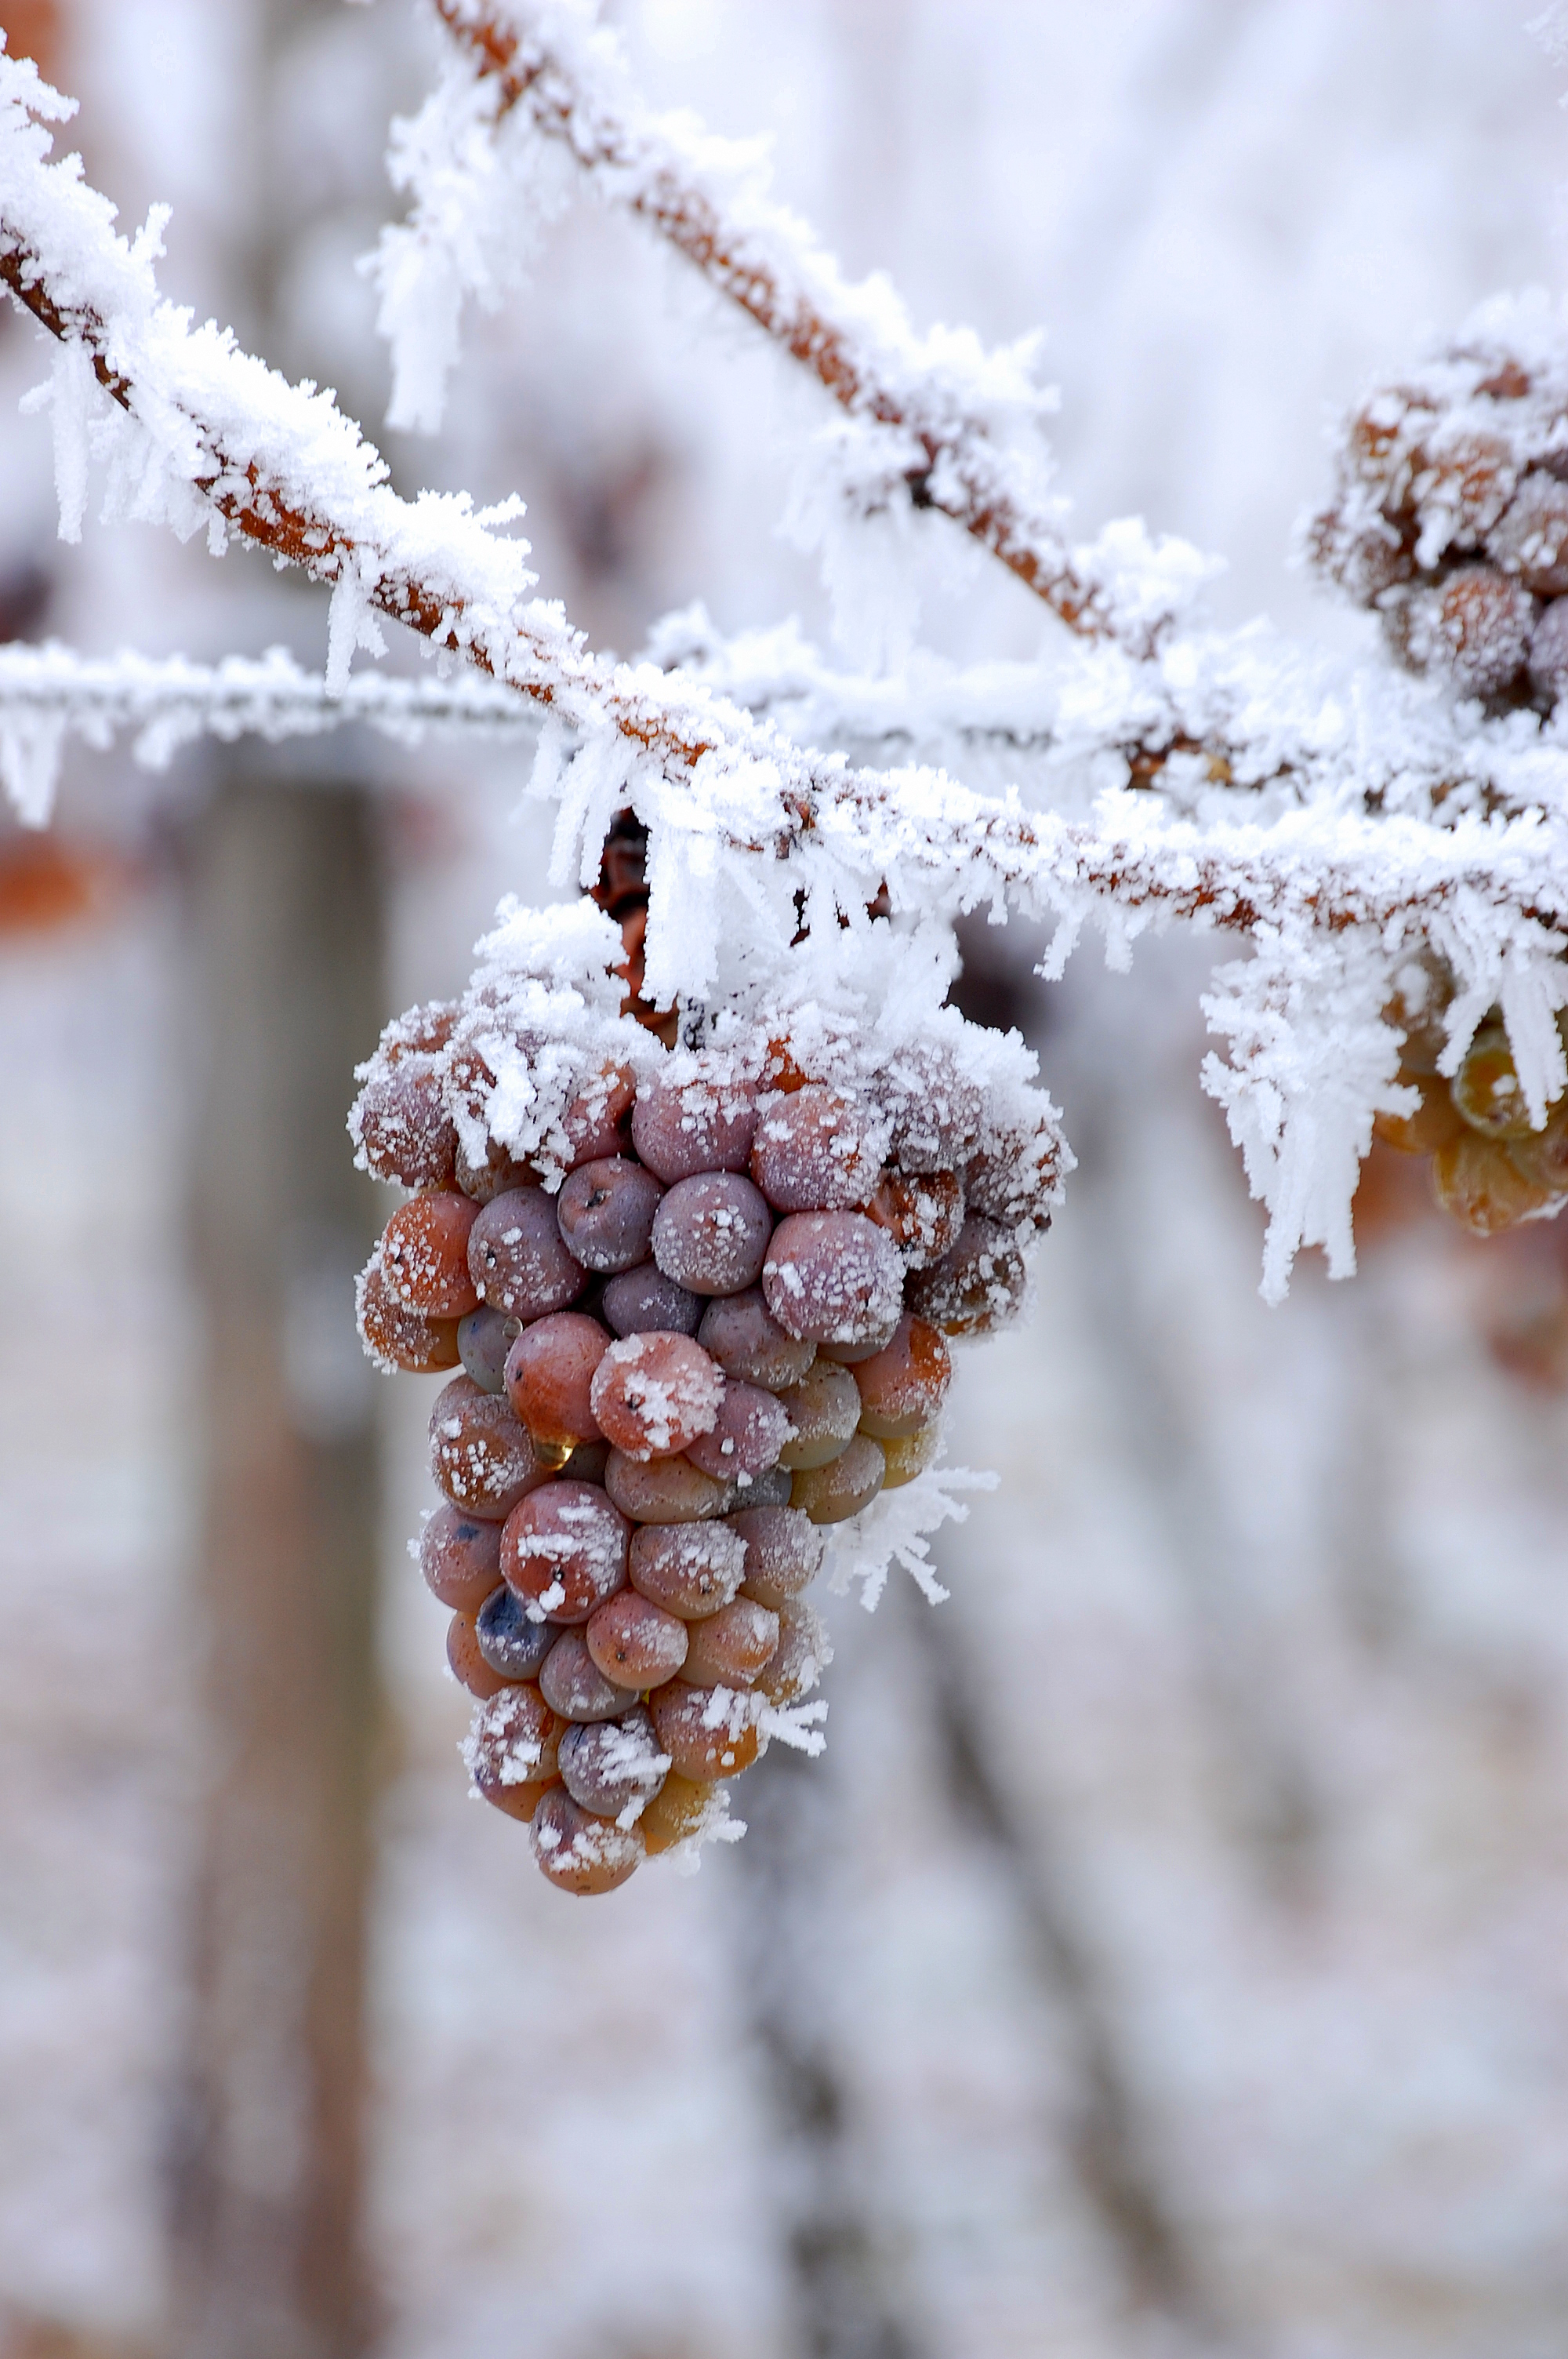 Ice Wine Makeupandwine